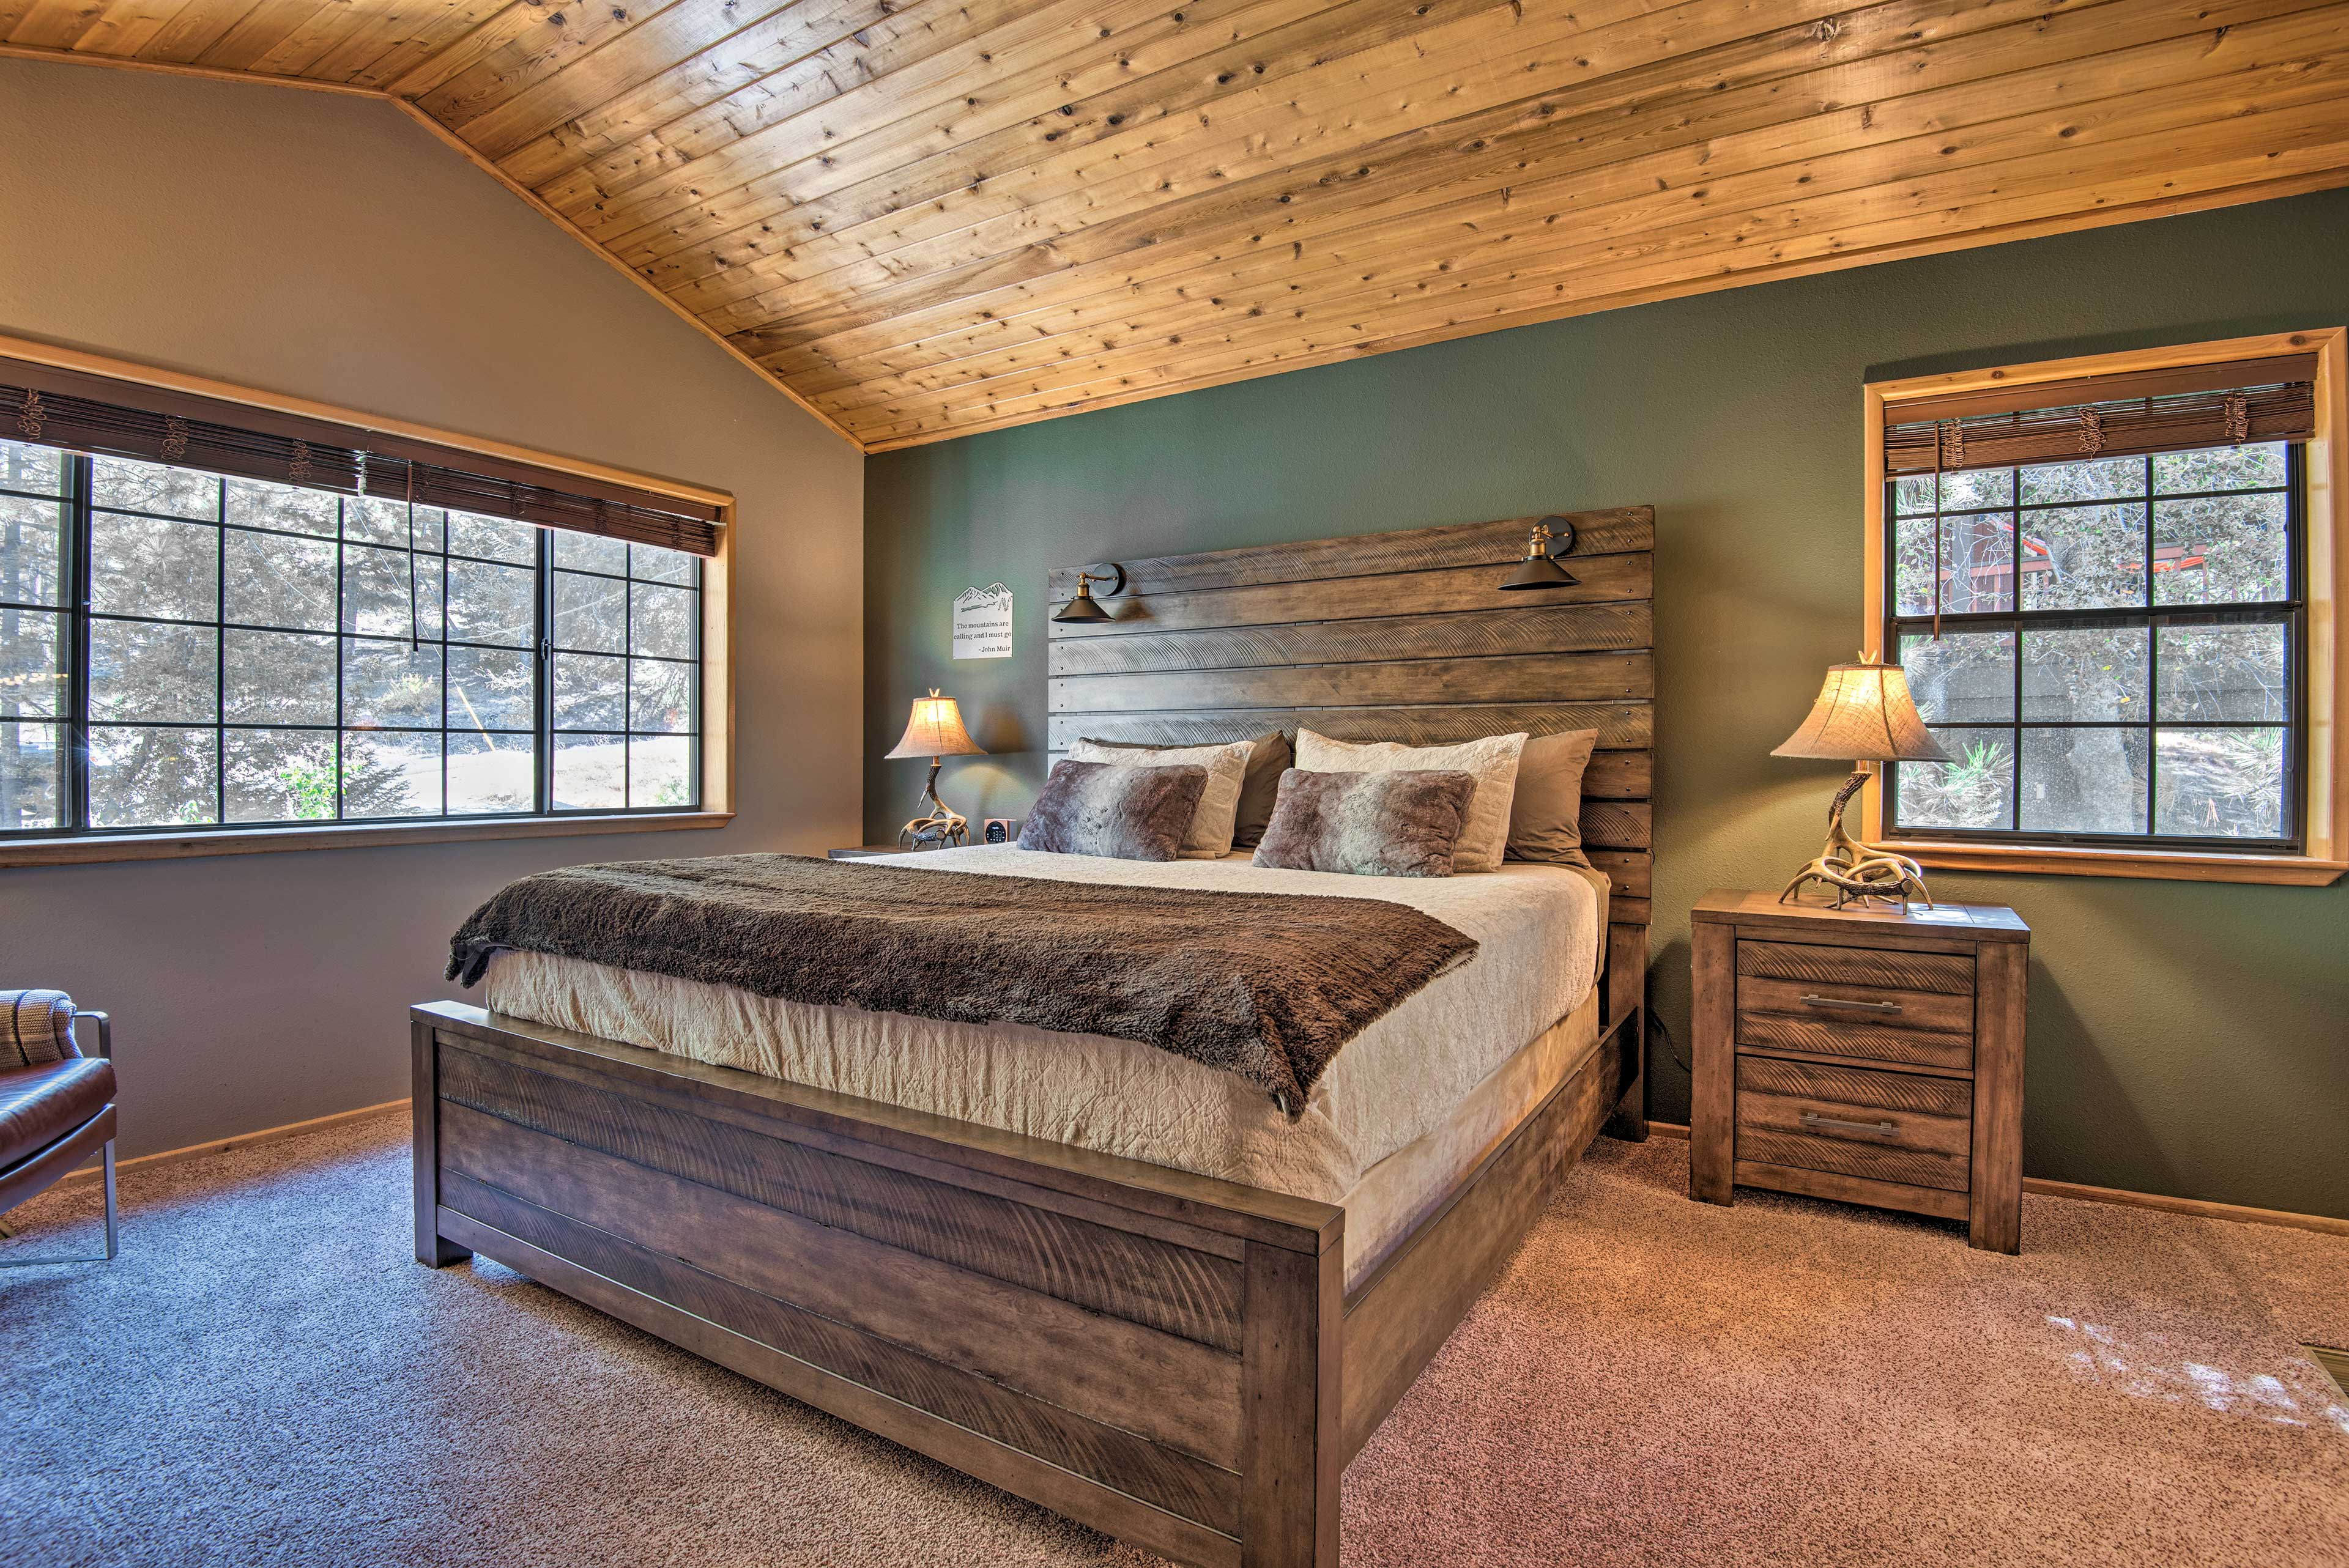 The master bedroom is complete with a king-sized bed.